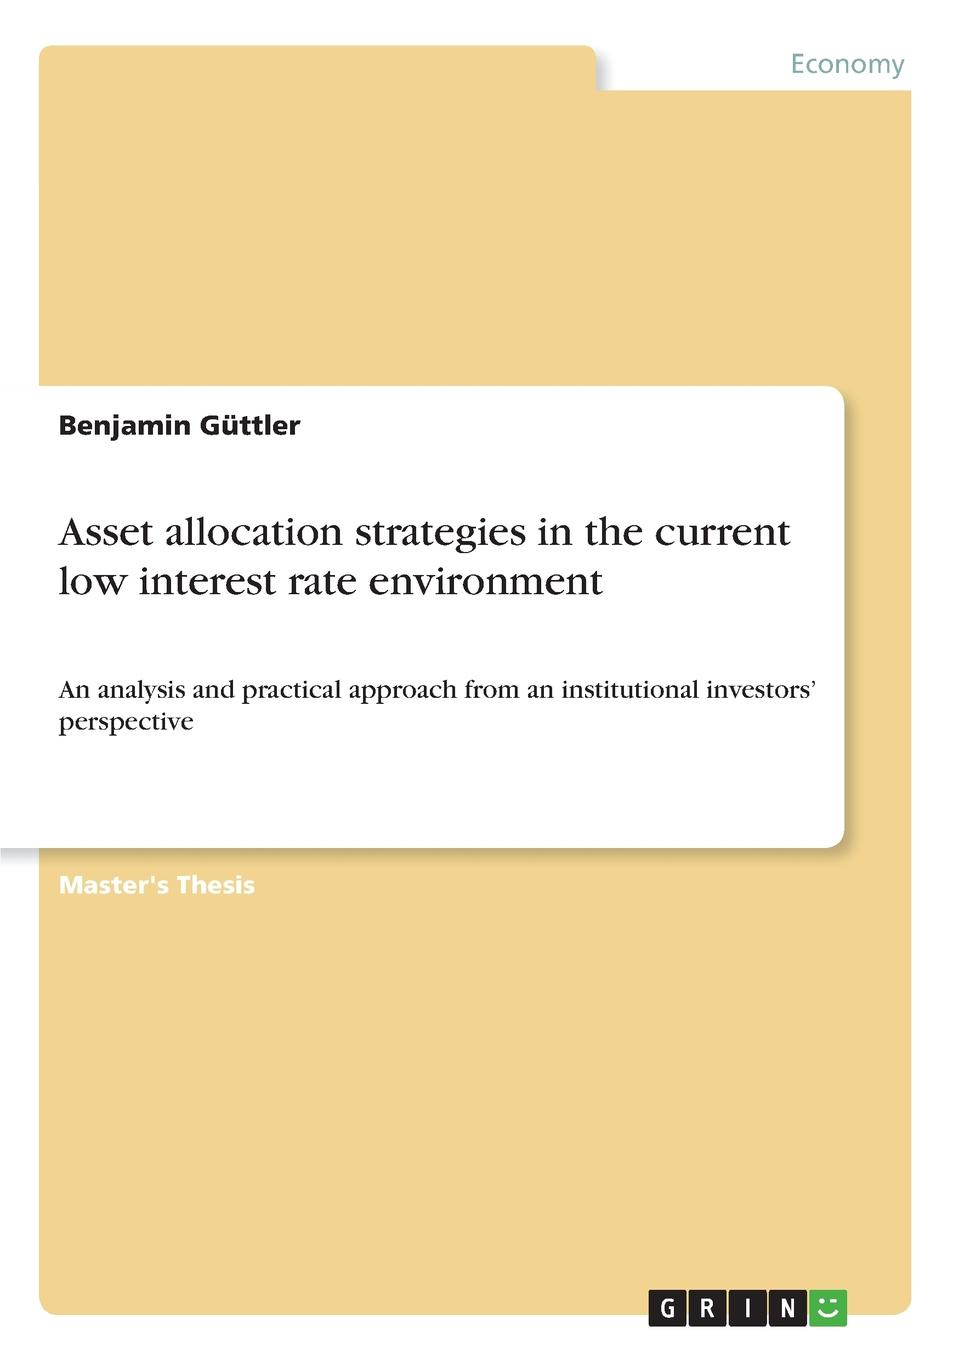 Benjamin Güttler Asset allocation strategies in the current low interest rate environment mahmudul hasan review of the current legal and institutional mechanisms in relation to the environment pollution control in bangladesh